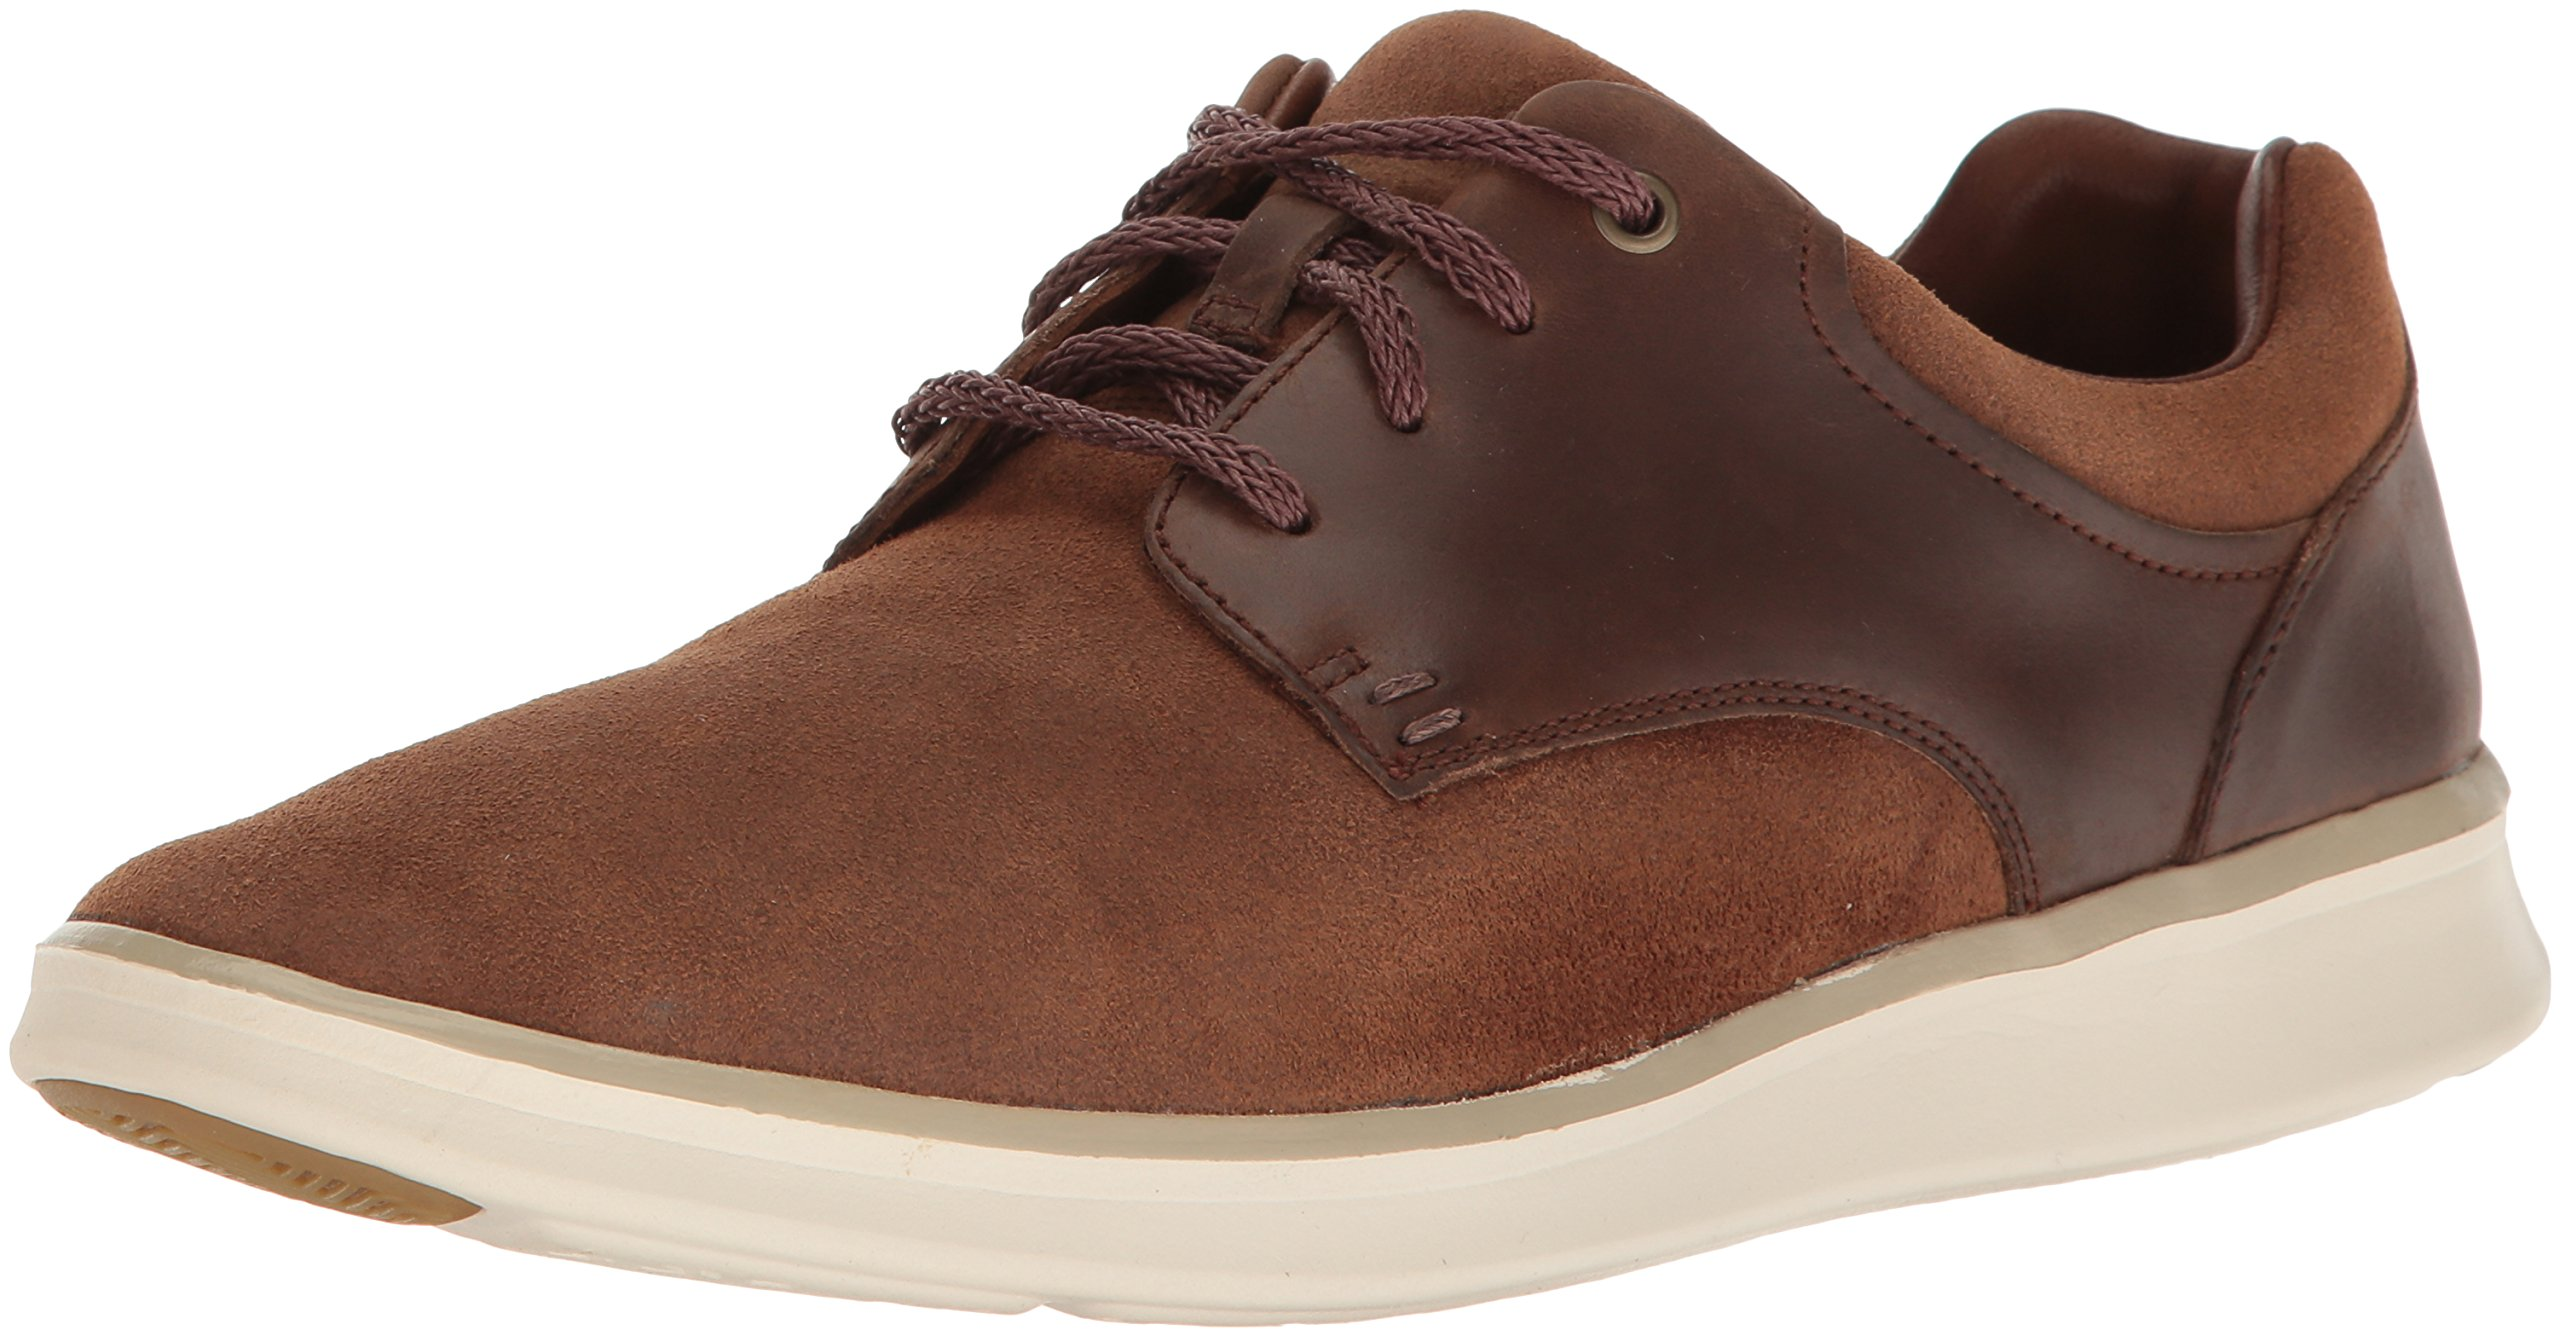 UGG Men's Hepner Fashion Sneaker Chestnut 11.5 M US by UGG (Image #1)